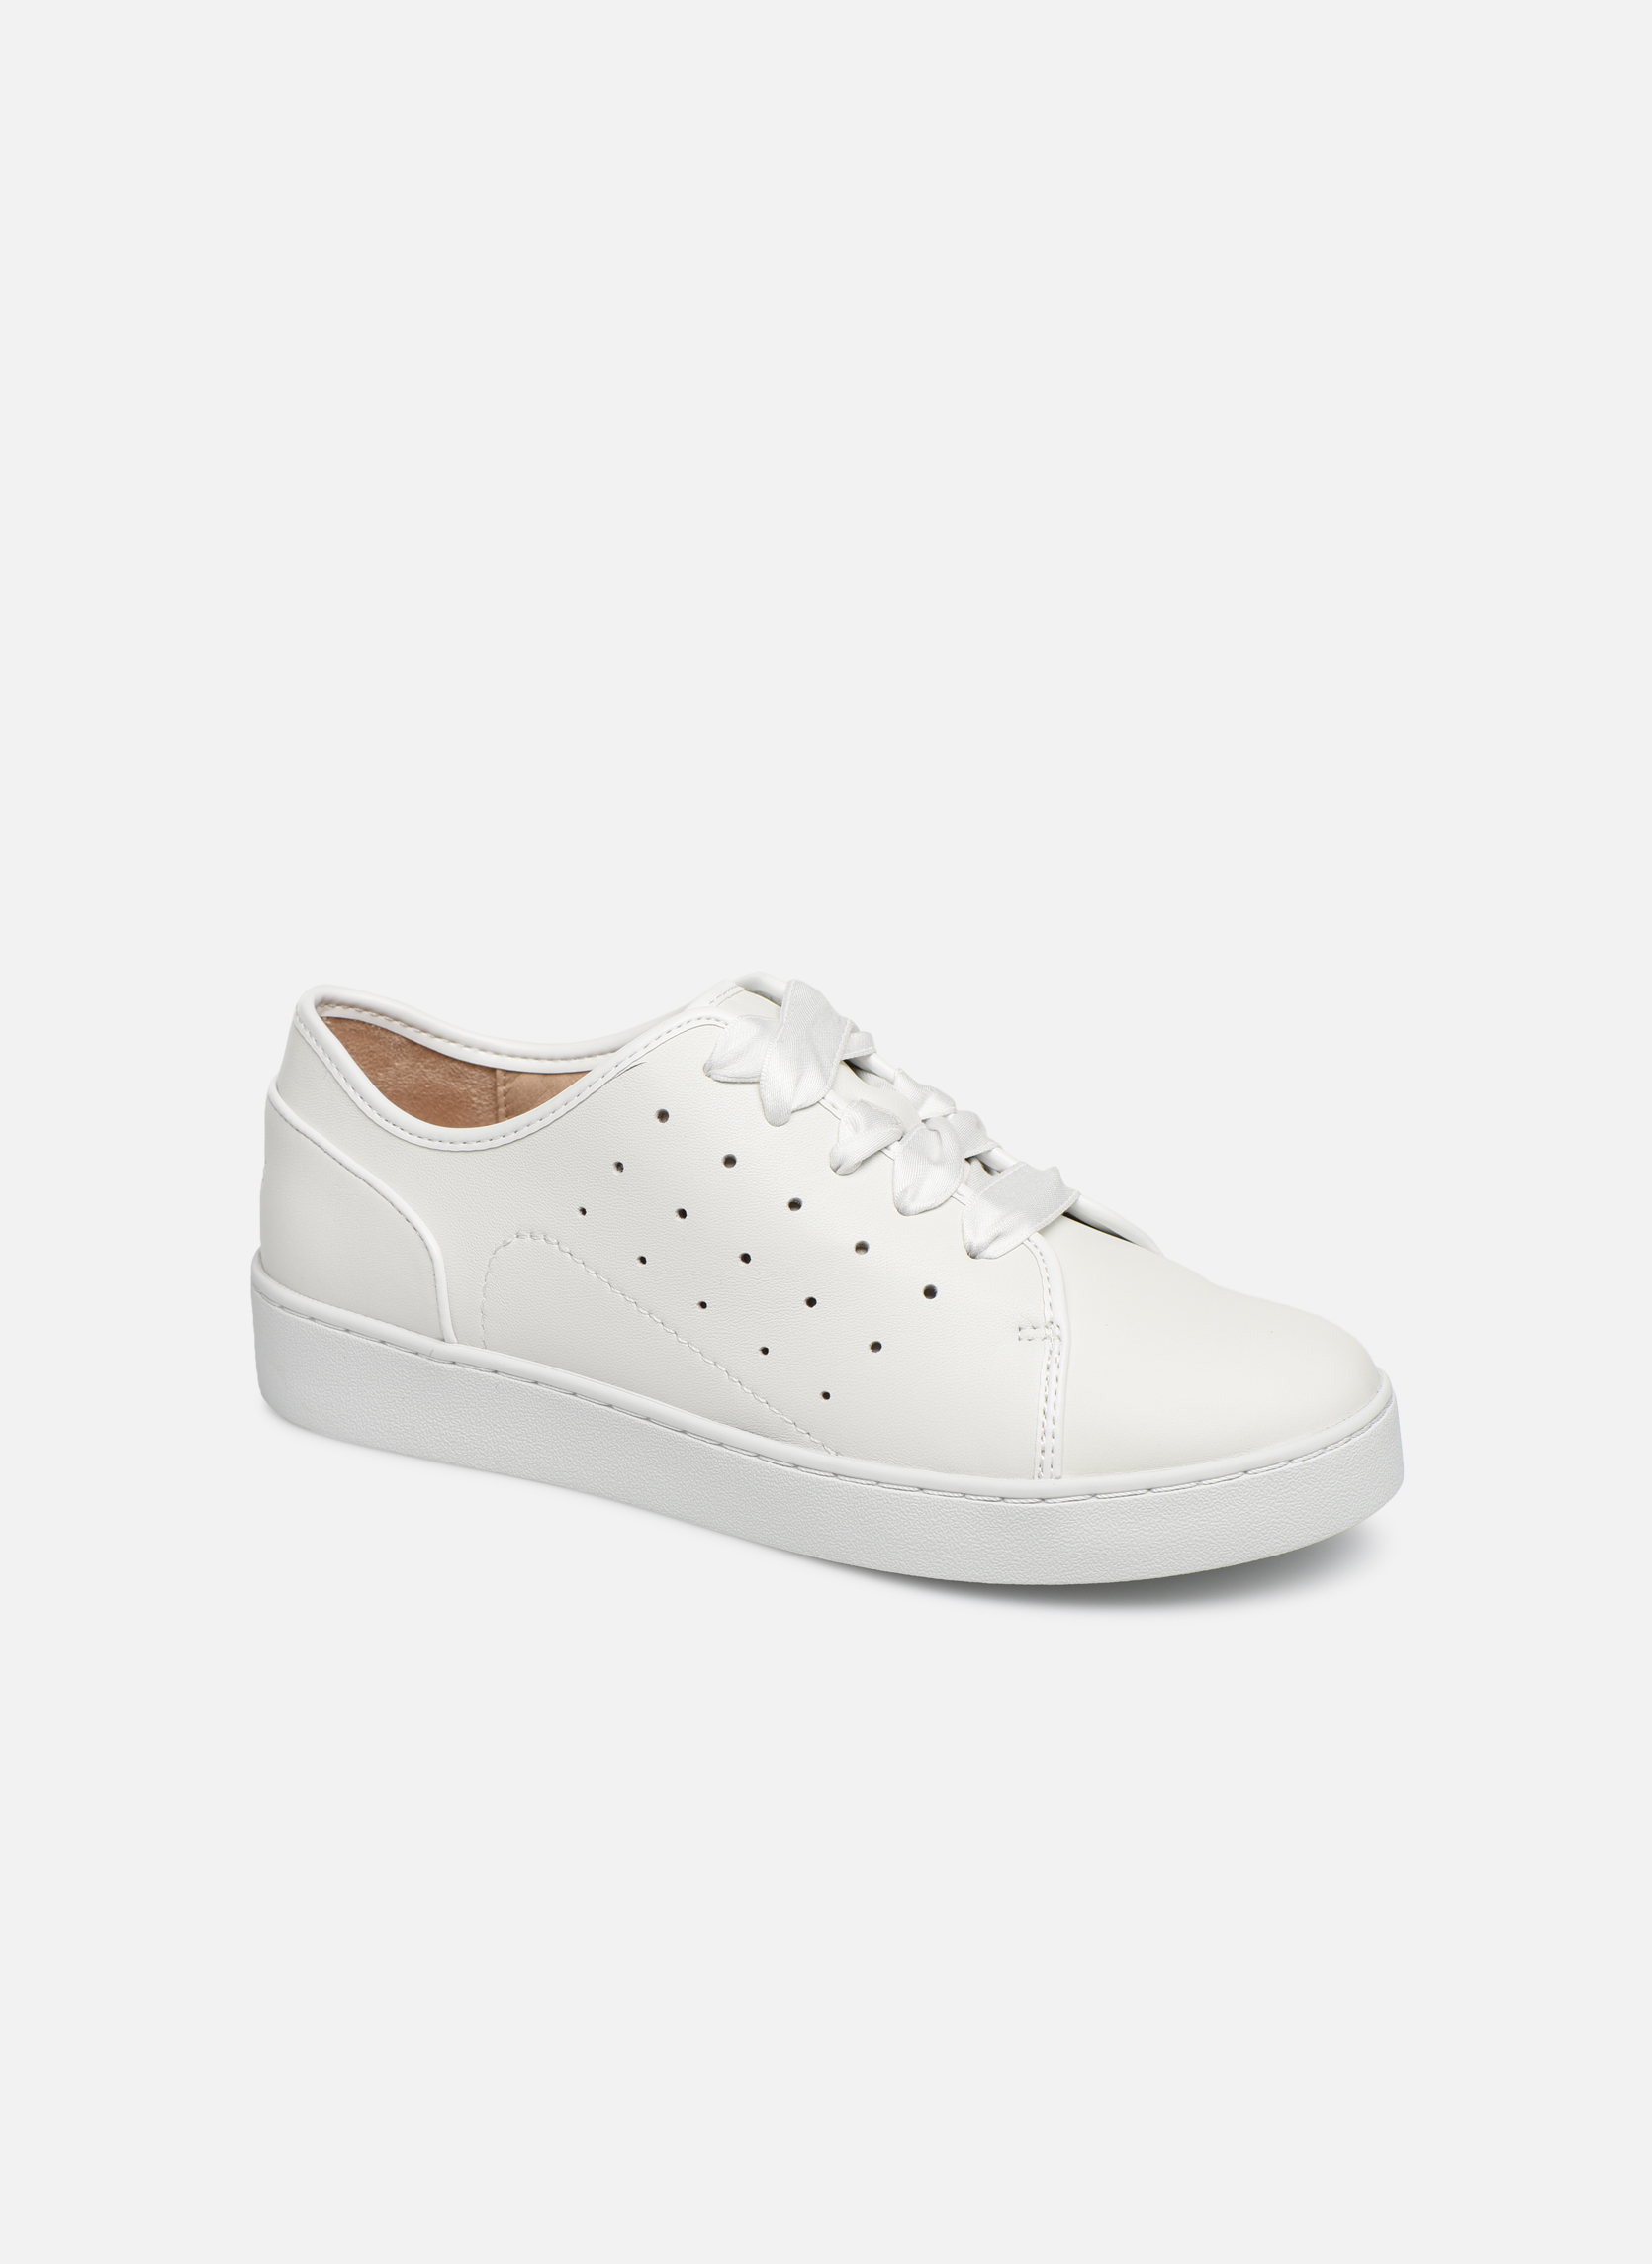 Sneakers Vionic Wit